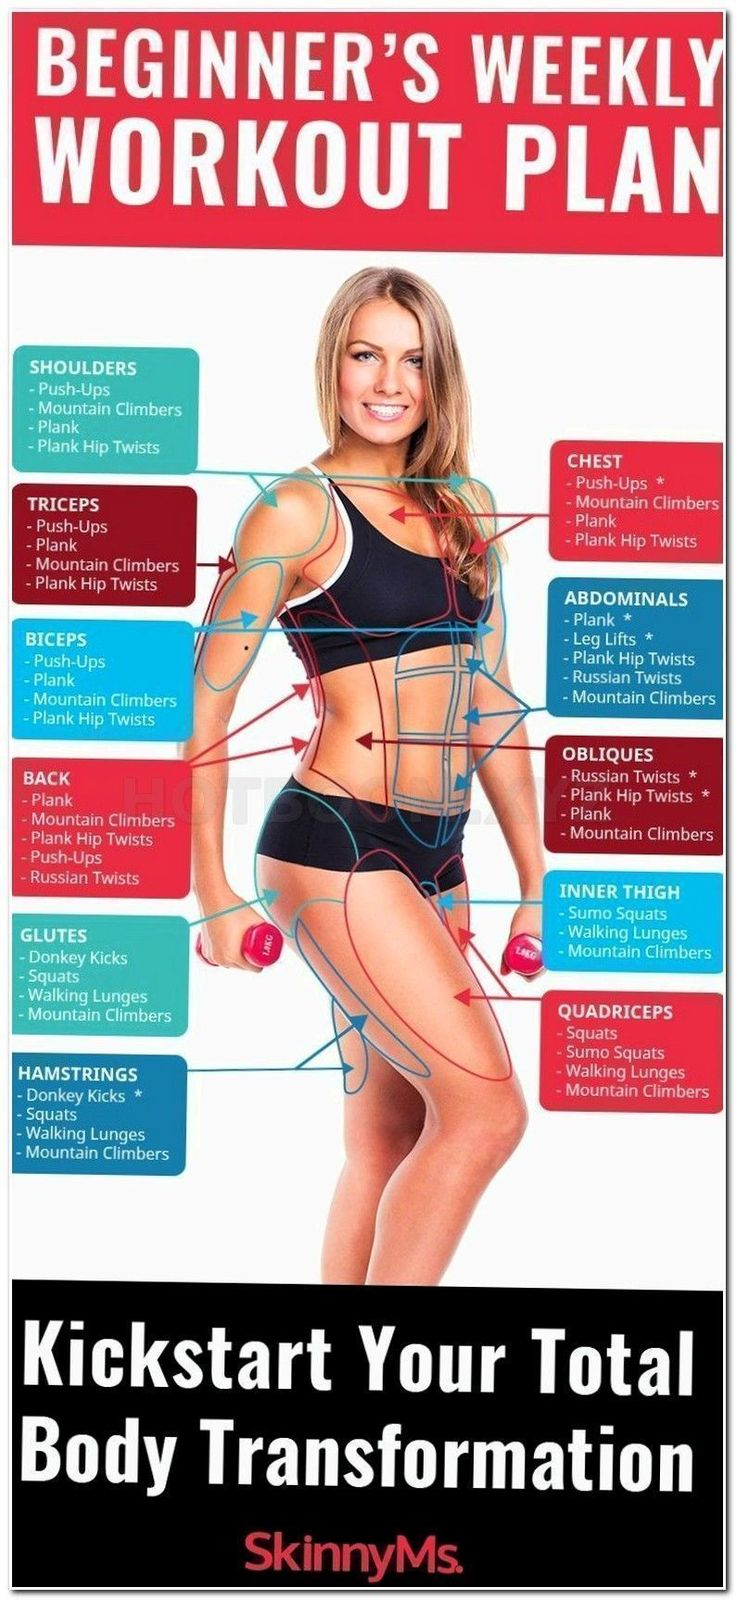 curves for women location, 10 dollar fitness, best home exercises for abs, gyms in cork ireland, j womens healt, carmel fitness cente, best muscle building workout plan, quick weight loss tricks, female fitness models australia, male model workout and die #femalefitnessmodels #fitnessmodels #womanfitness